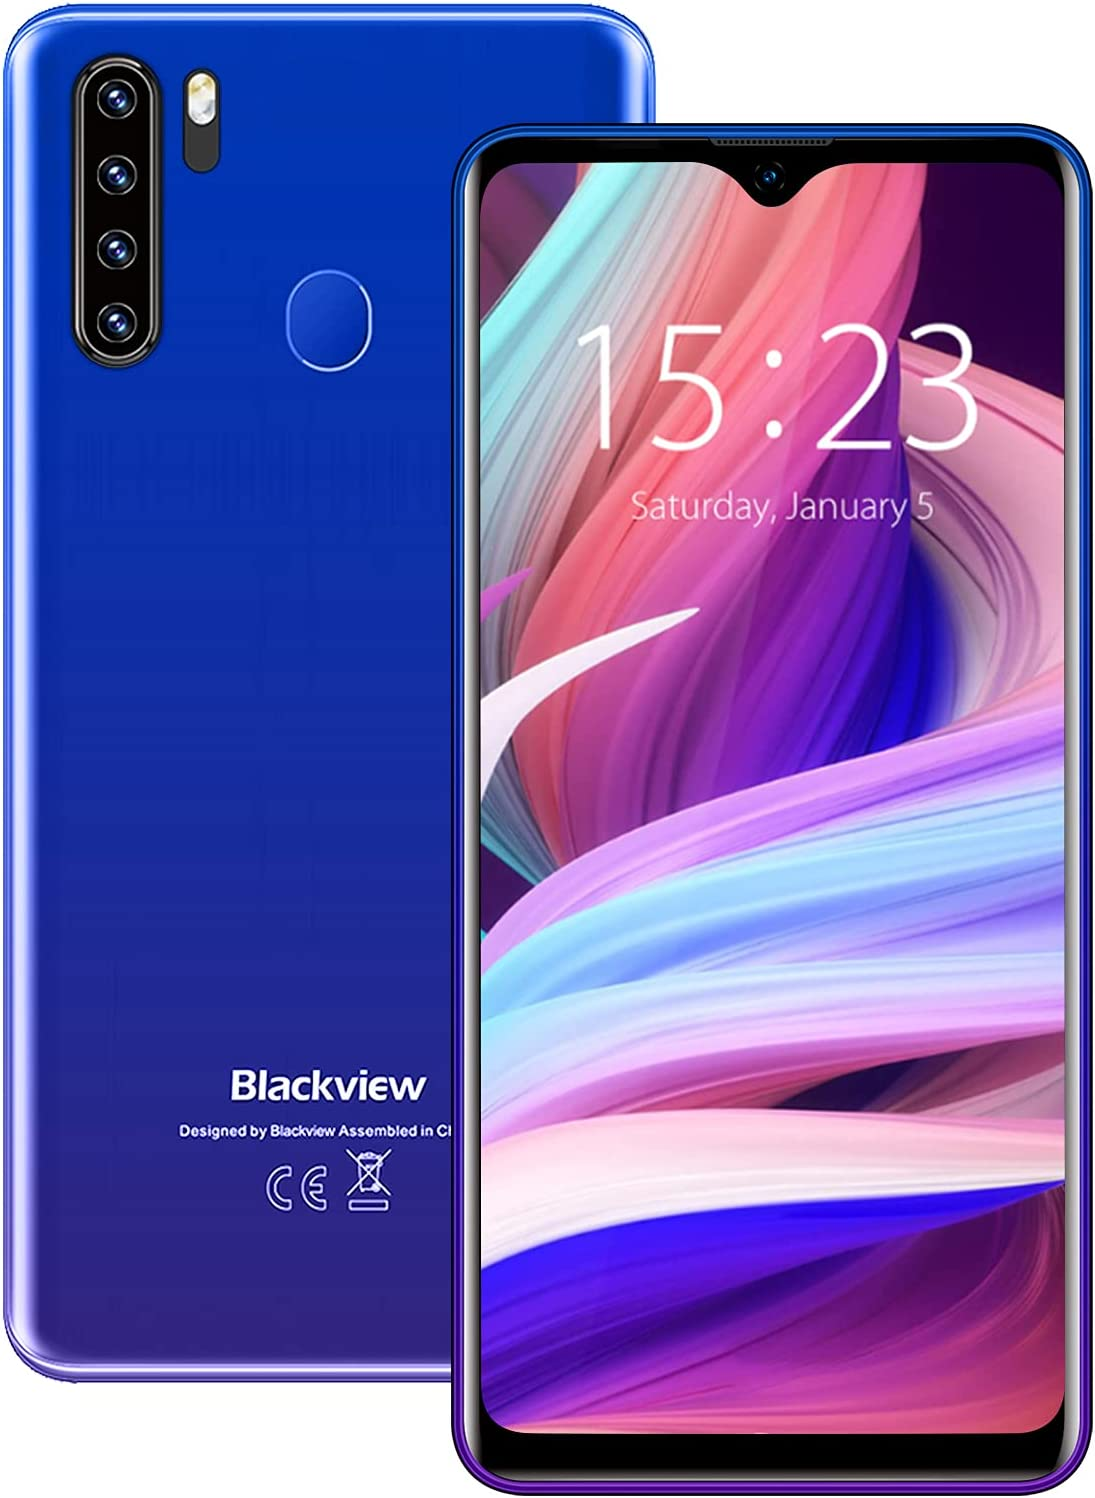 Unlocked smartphones, Blackview A80Plus, 4G bundle Android 10 OS android phone, dual sim unlocked cell phones, 4GB+64GB ROM, 6.5